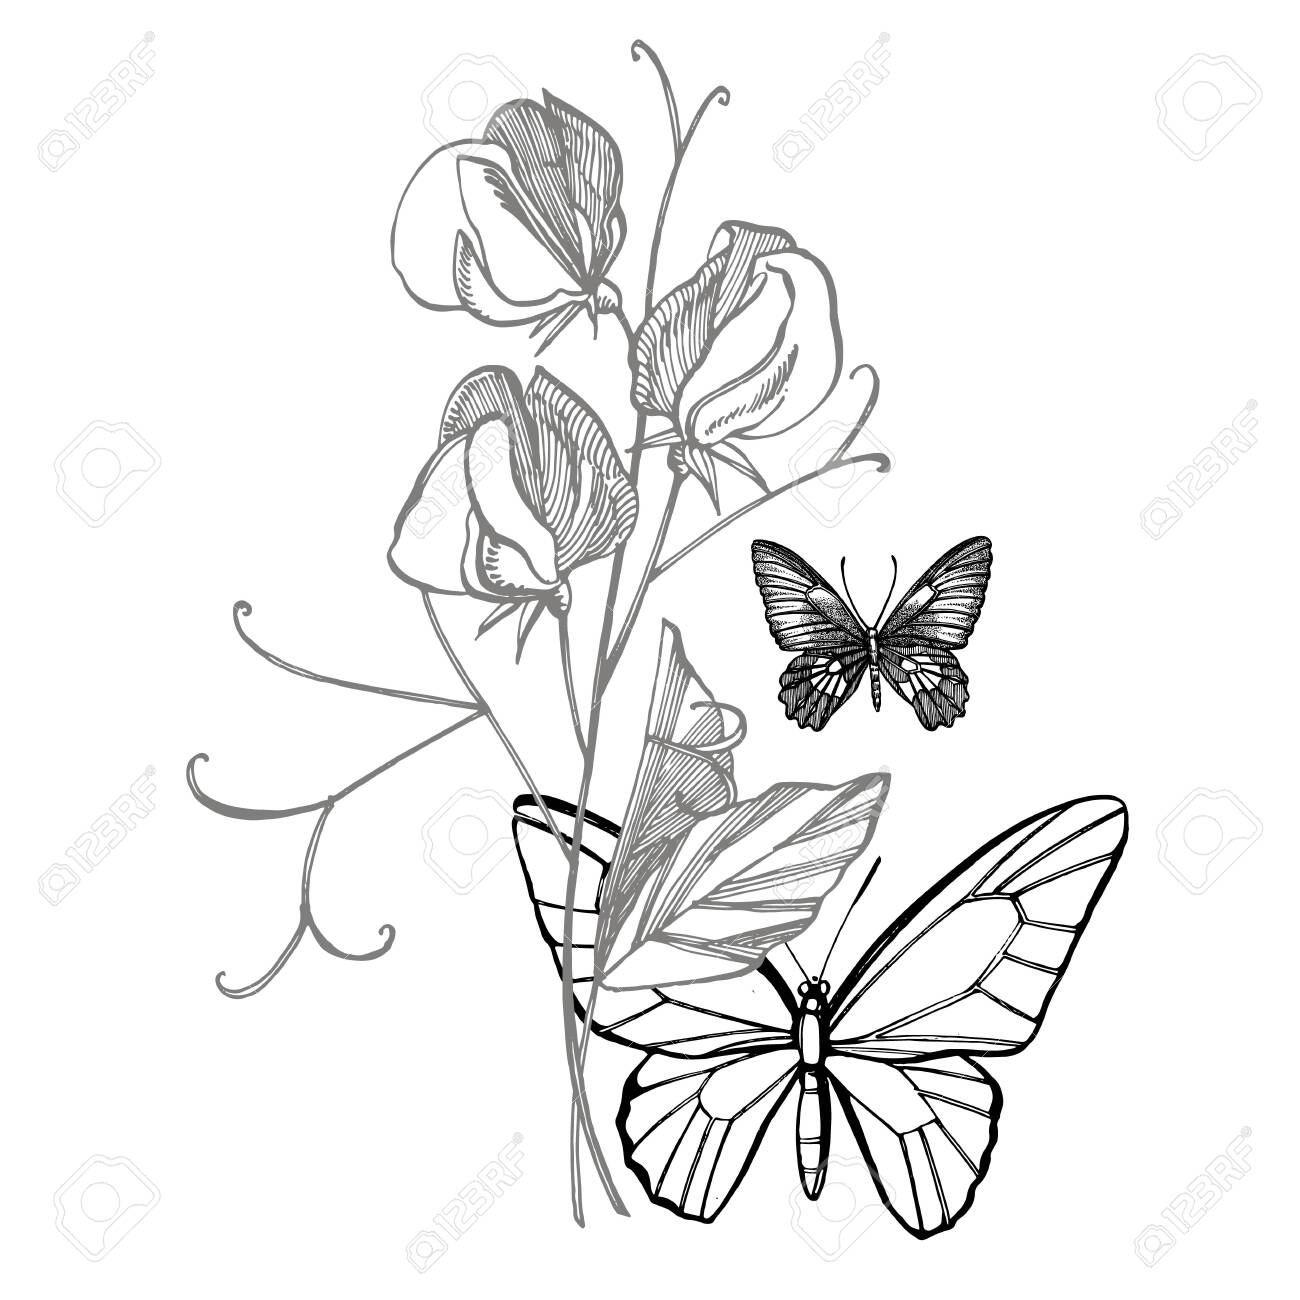 Sweet Pea Flowers Drawing And Sketch With Line Art On White Backgrounds